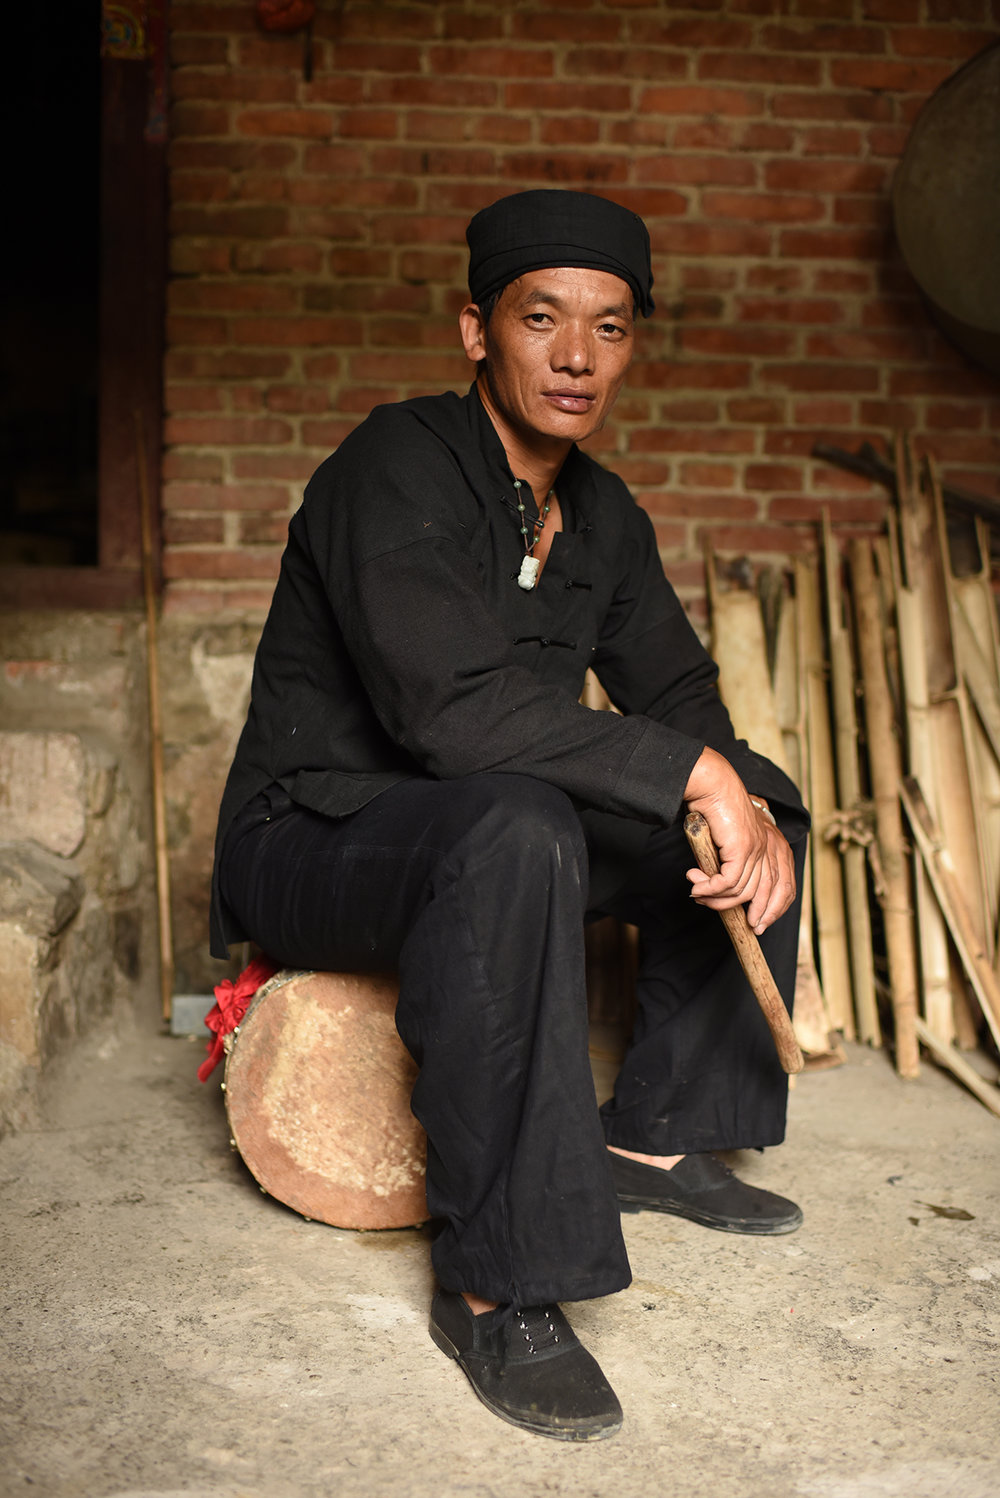 Inheritor of Mang Drum Dance Li Ke, Potuo village, Yunnan, 2017.